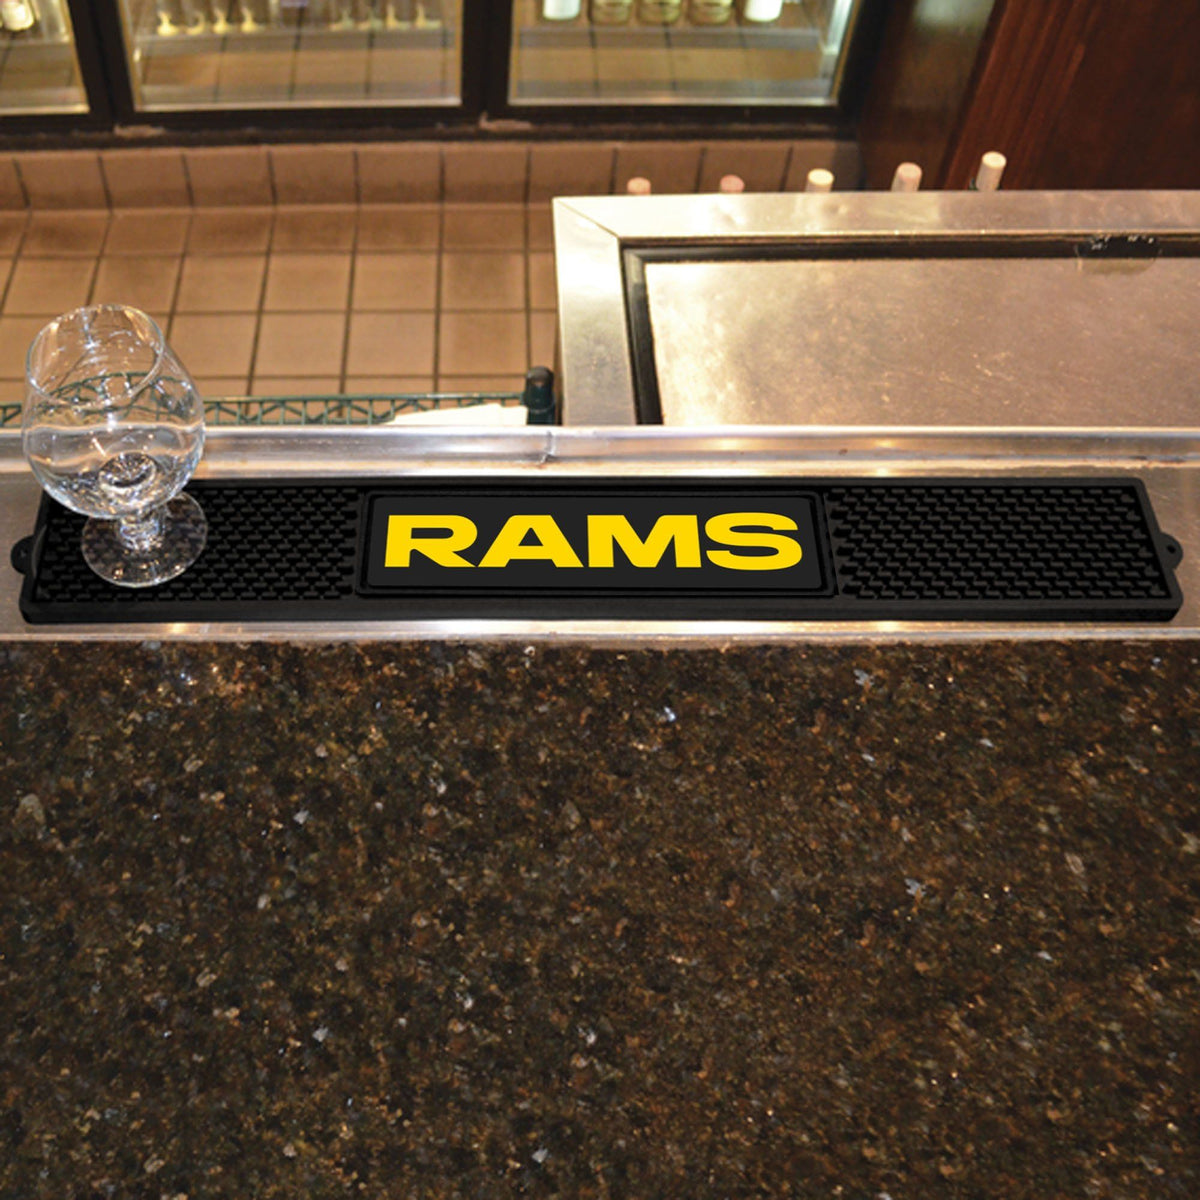 NFL - Drink Mat NFL Mats, Tailgate Accessory, Drink Mat, NFL, Leisure Fan Mats Los Angeles Rams